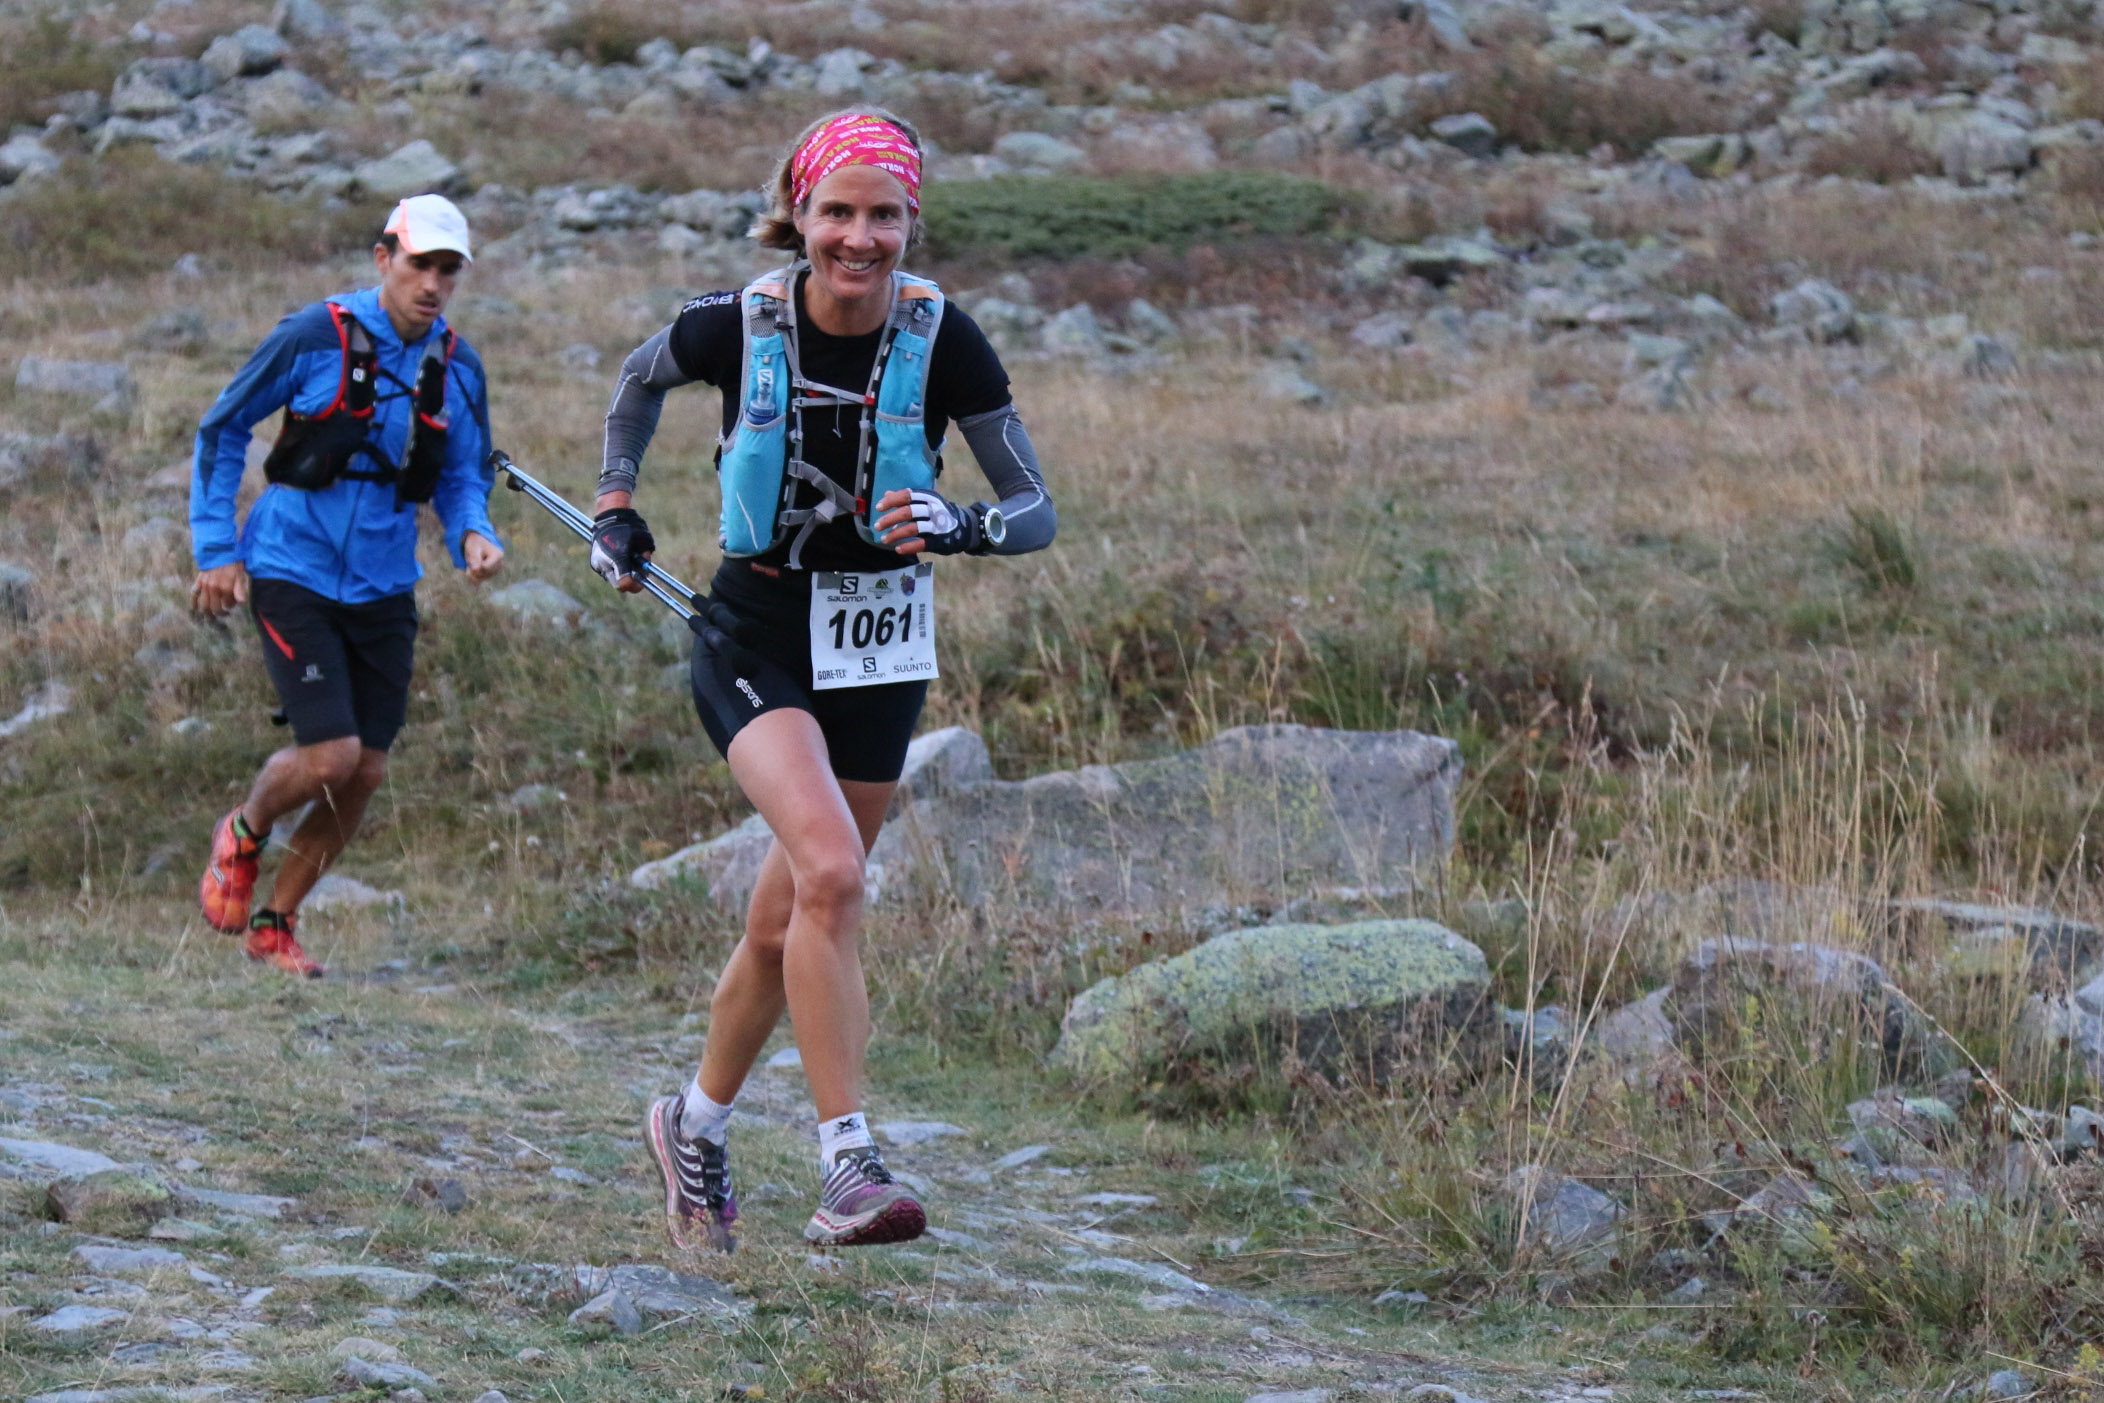 1-Serre-Che-trail-Salomon-2014-Caroline-Chaverot-1ère-48-km-photo-Robert-Goin